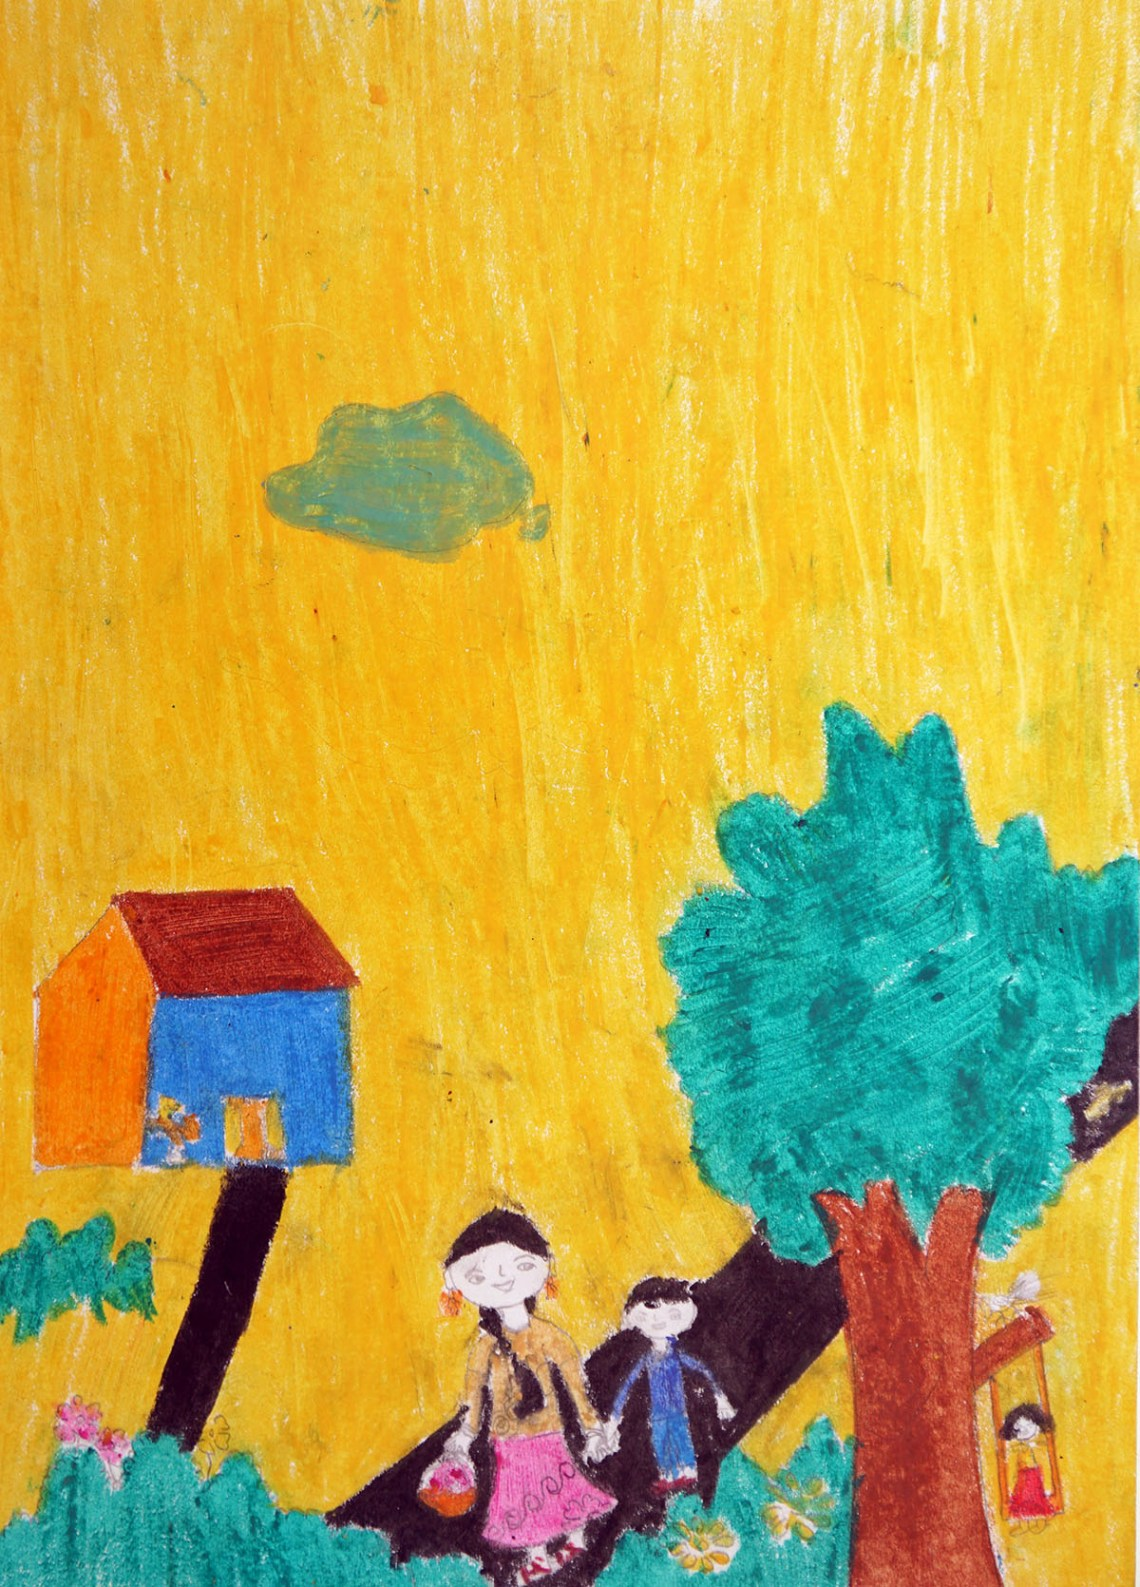 Painting by Kajal Pravin Baraf, medal winner in Khula Aasmaan art contest